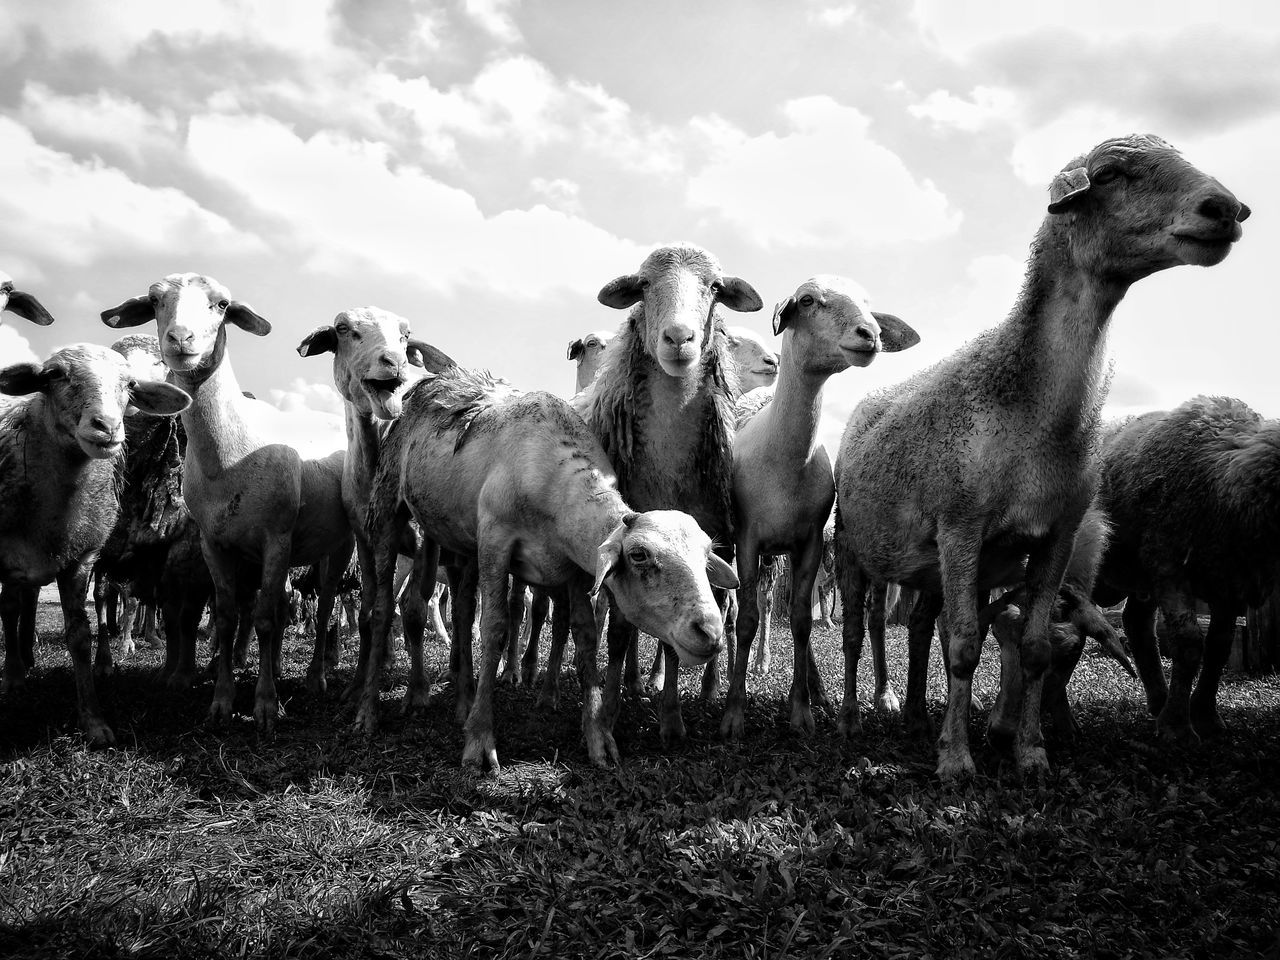 Sheep Sheeps Large Group Of Animals No People Sky Day Togetherness Mammal Sheeps 🐑 Animal Themes Grass Field Large Group Of Animals Chiangmai Chiang Mai Thailand Sheep Farm Pets Herd Summer Landscape Outdoors